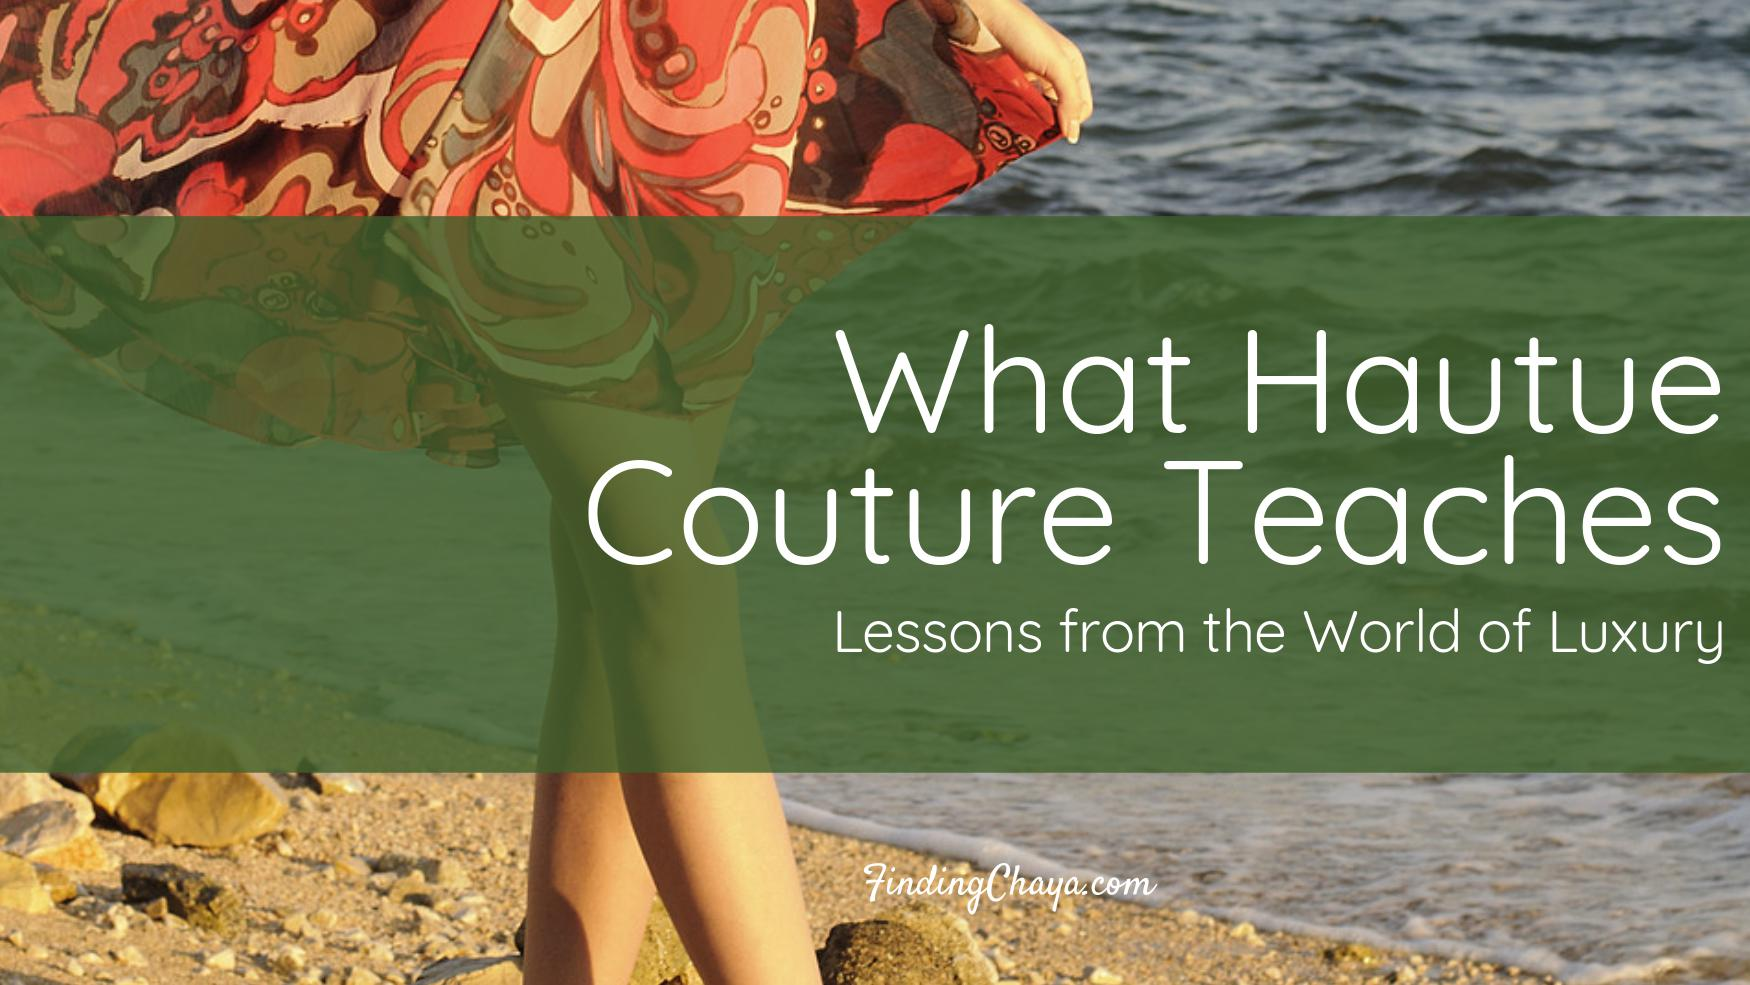 What can we learn from Haute Couture